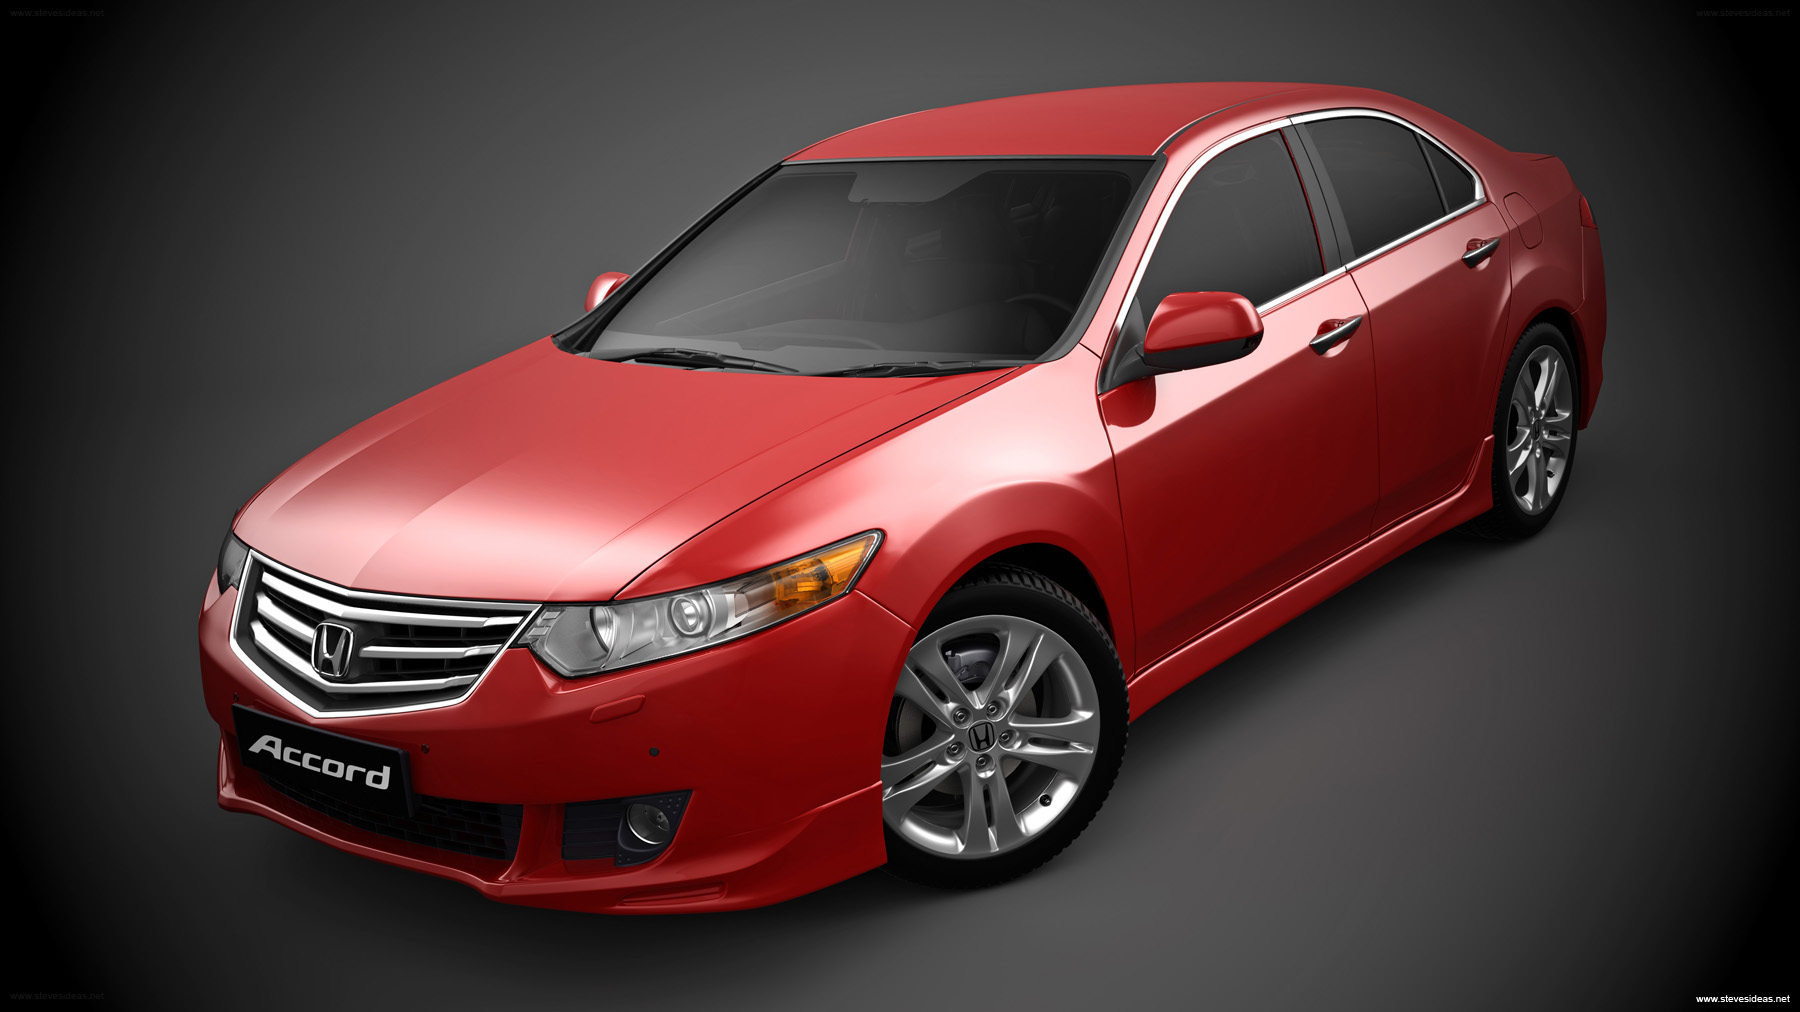 accord_red_final_small